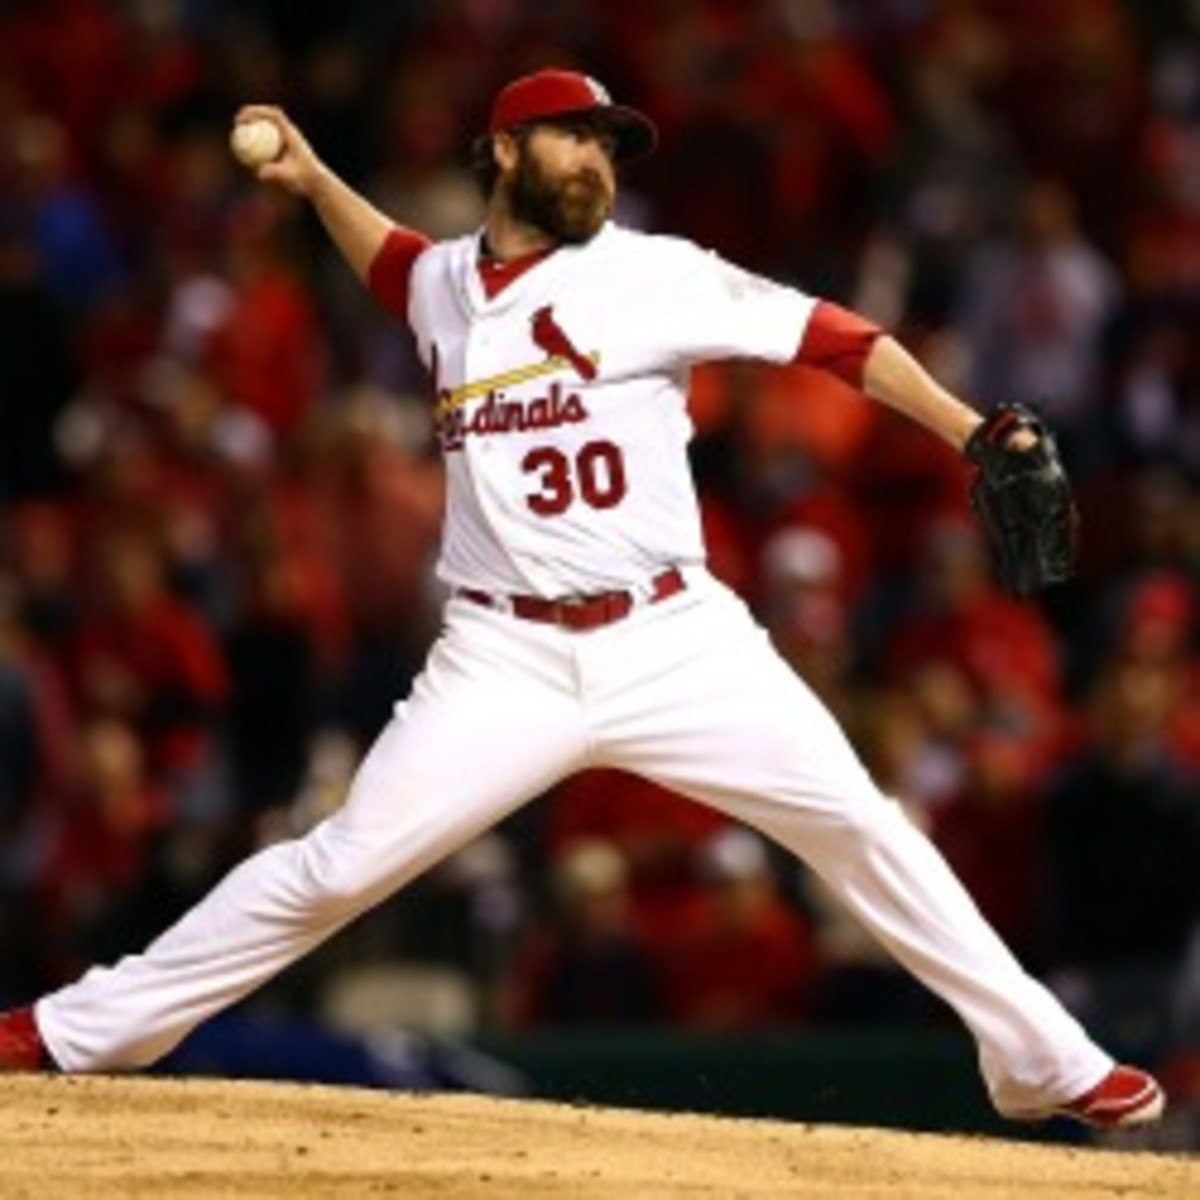 Cardinals relief pitcher Jason Motte agreed to a 2-year deal worth $12 million. (Kevin C. Cox/Getty Images)